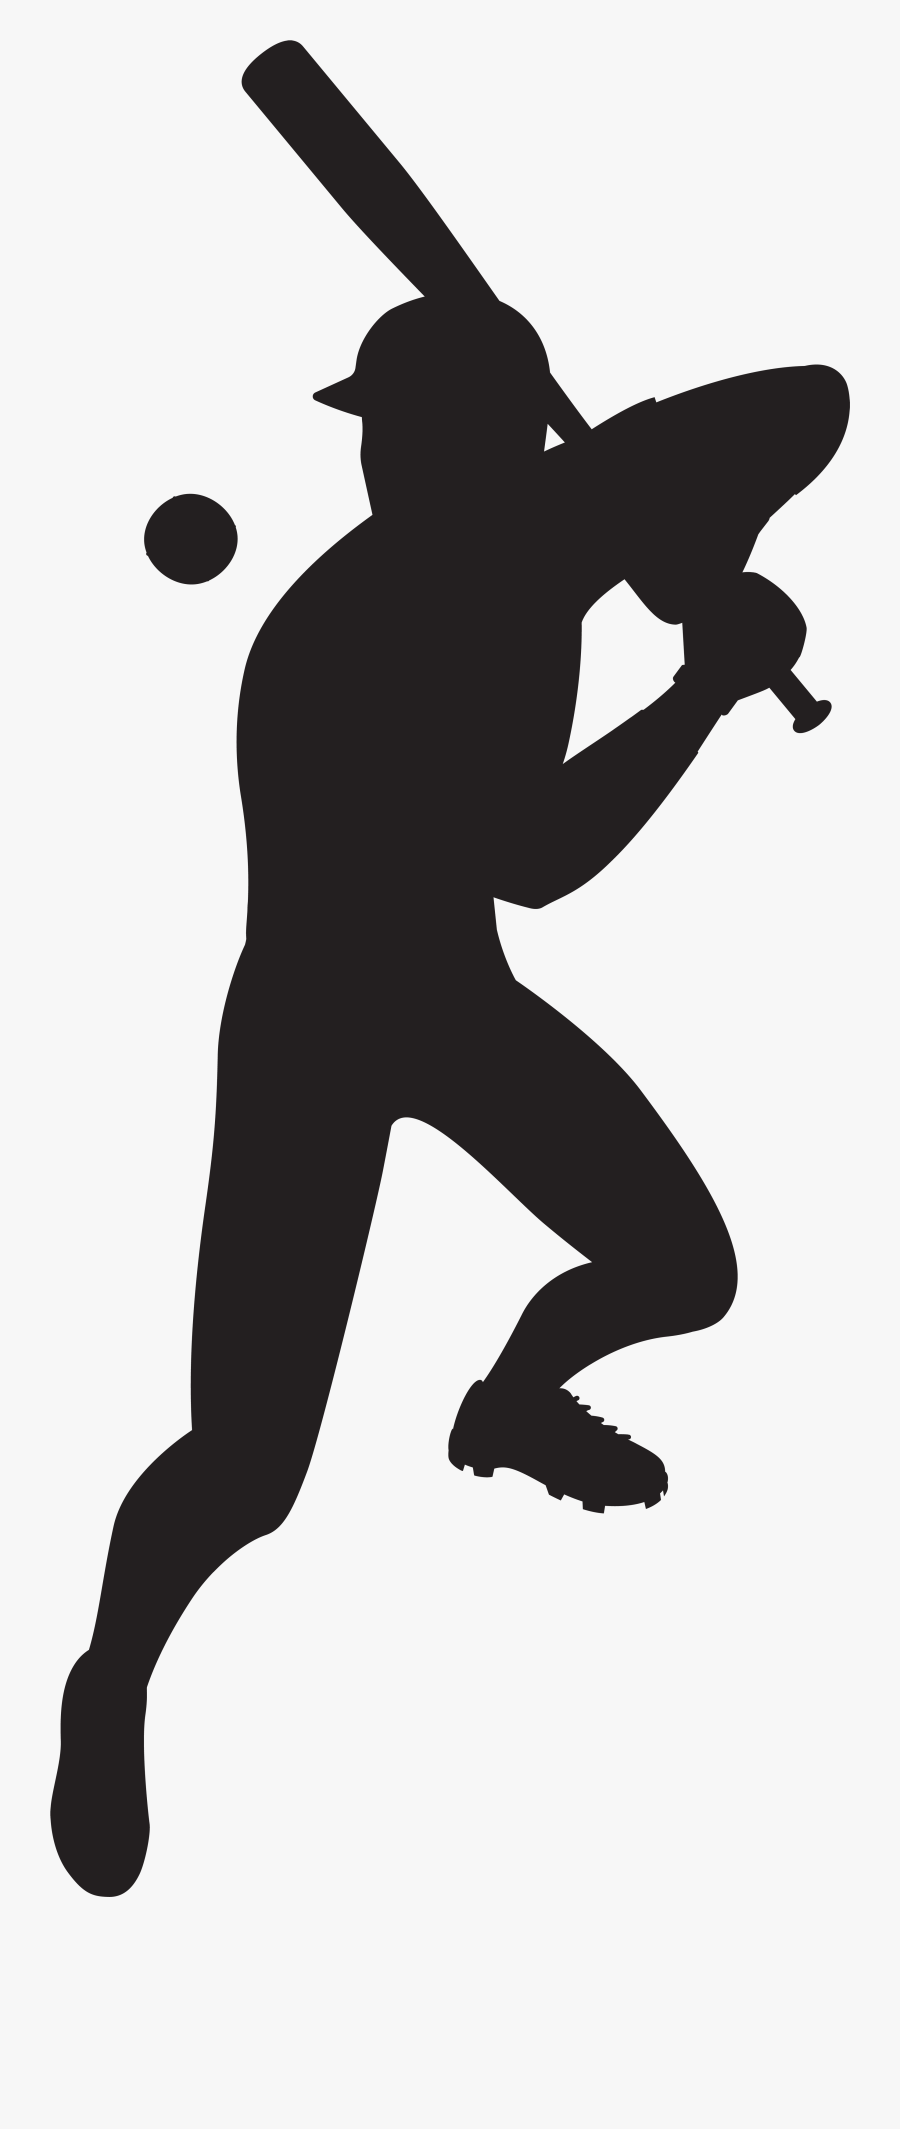 Clip Art Player Black And White - Baseball Player Silhouette Png, Transparent Clipart